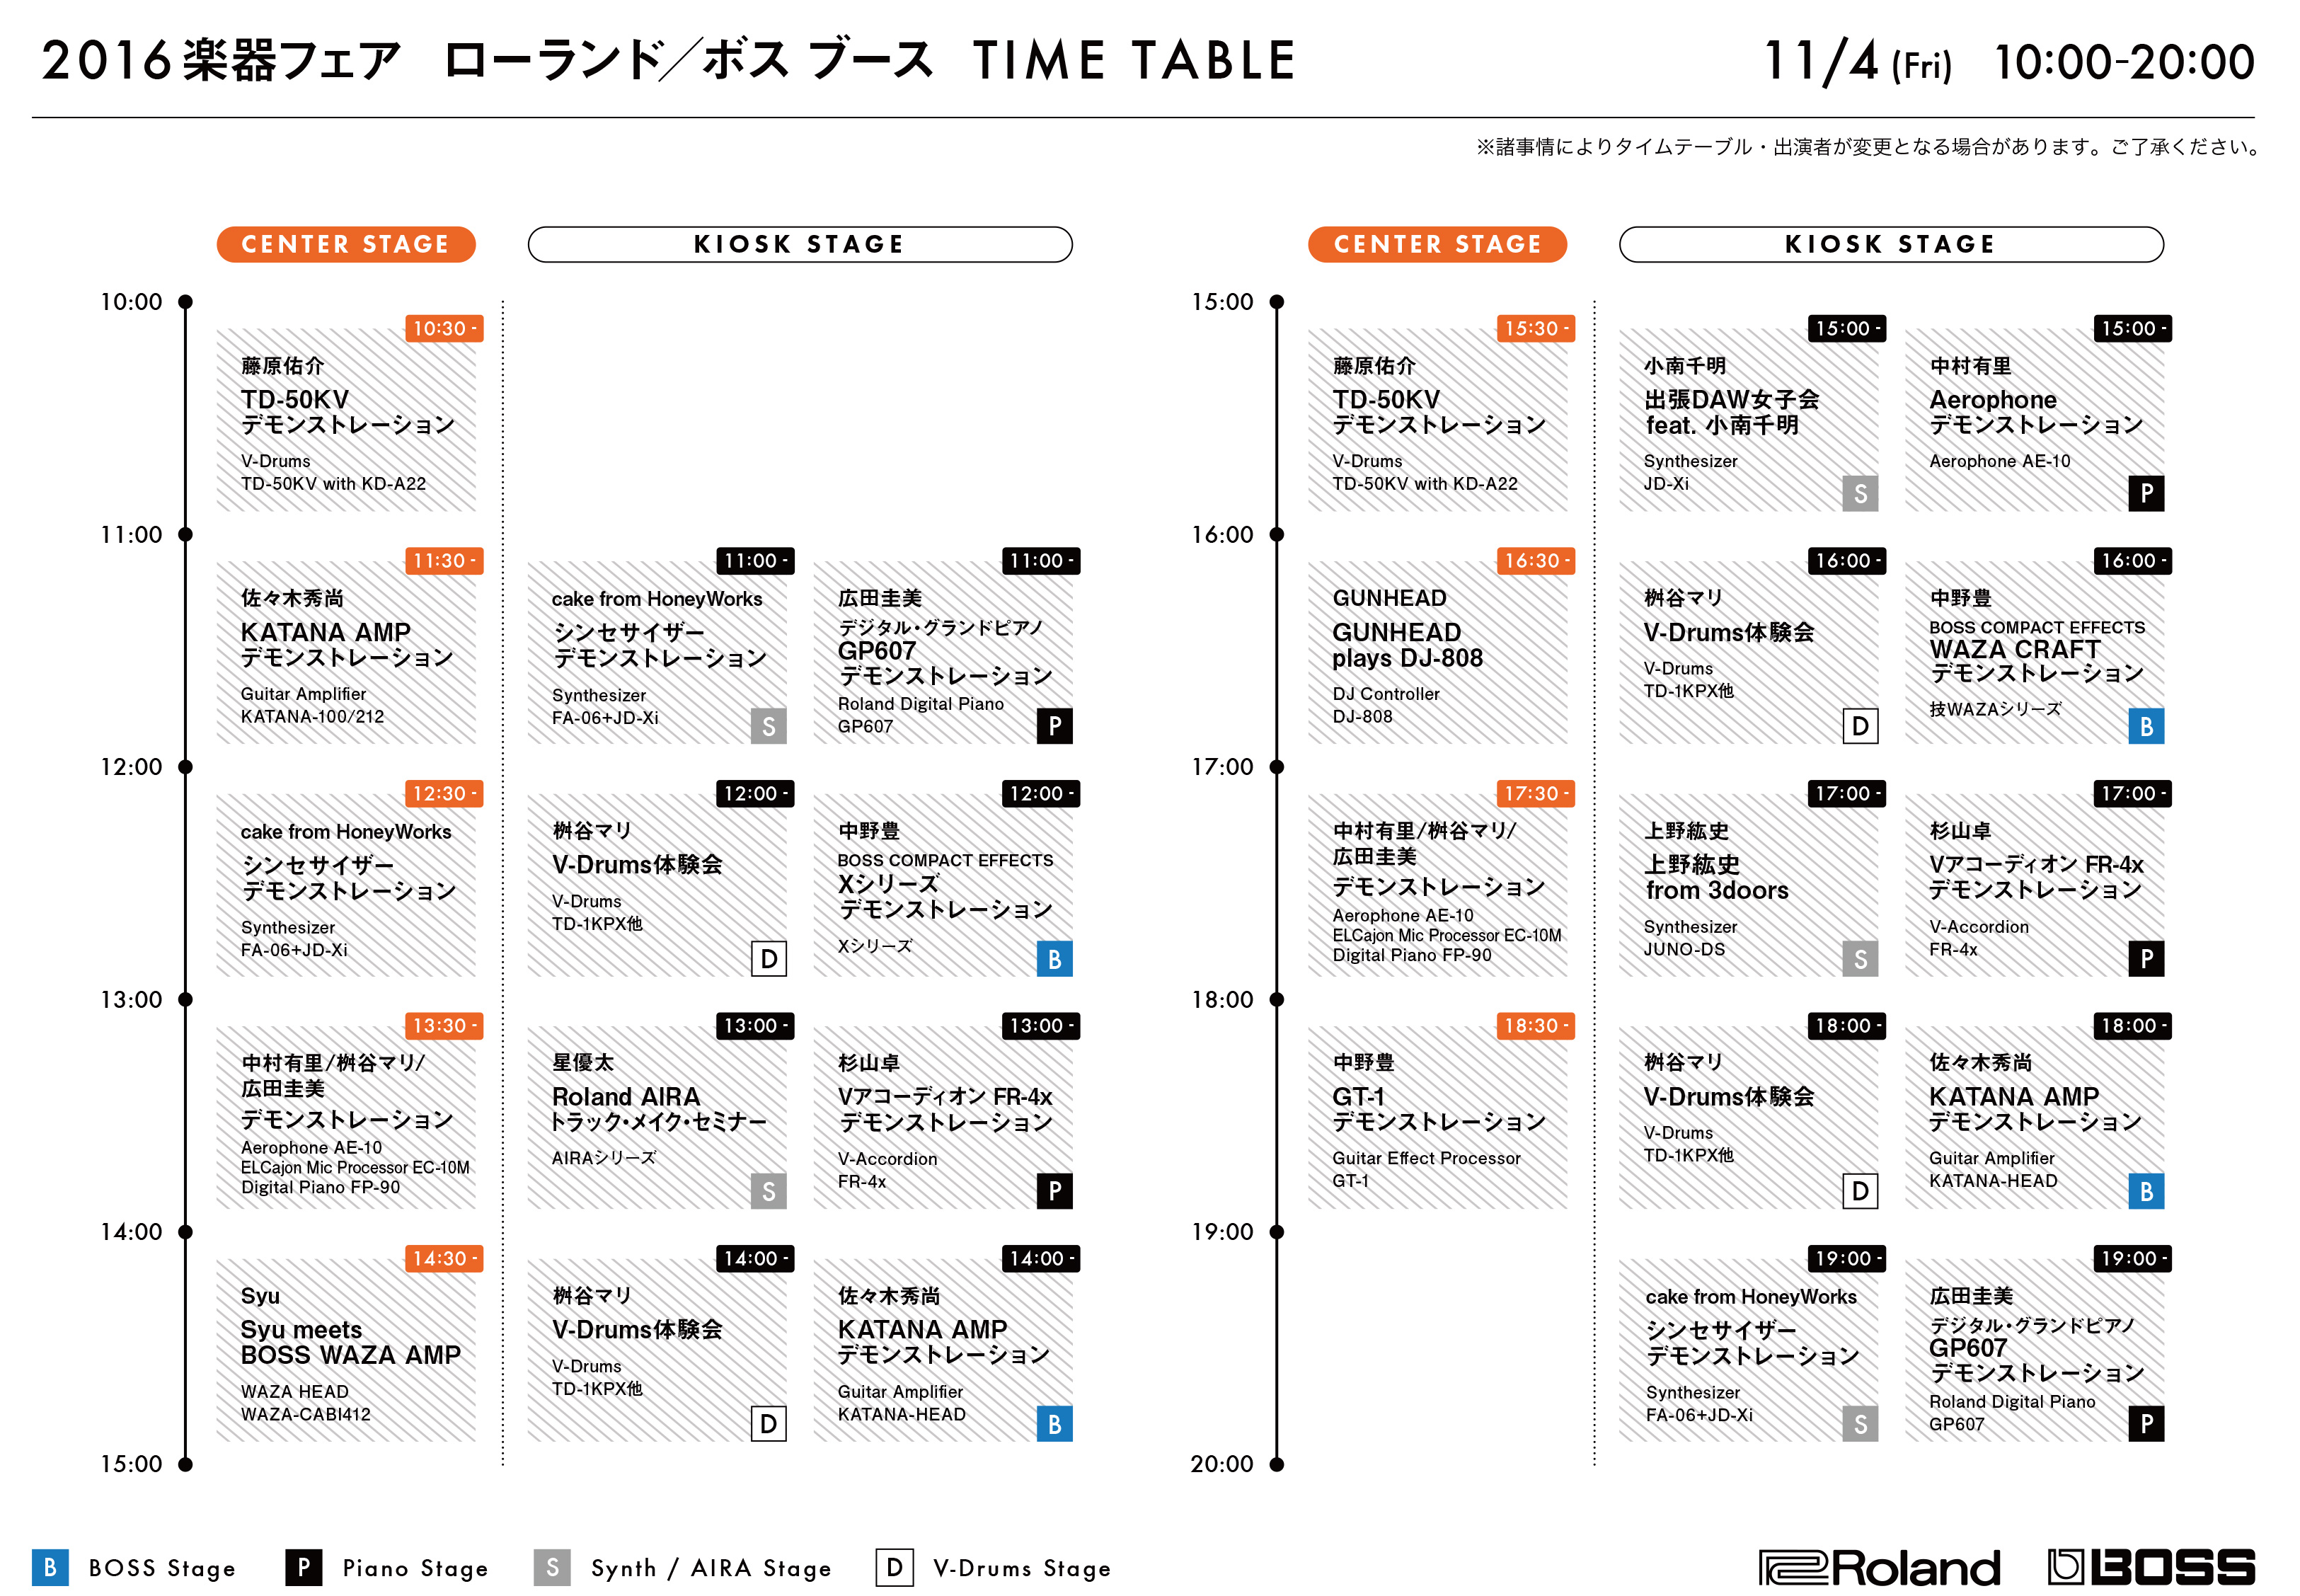 timetable_roland_boss_20161104